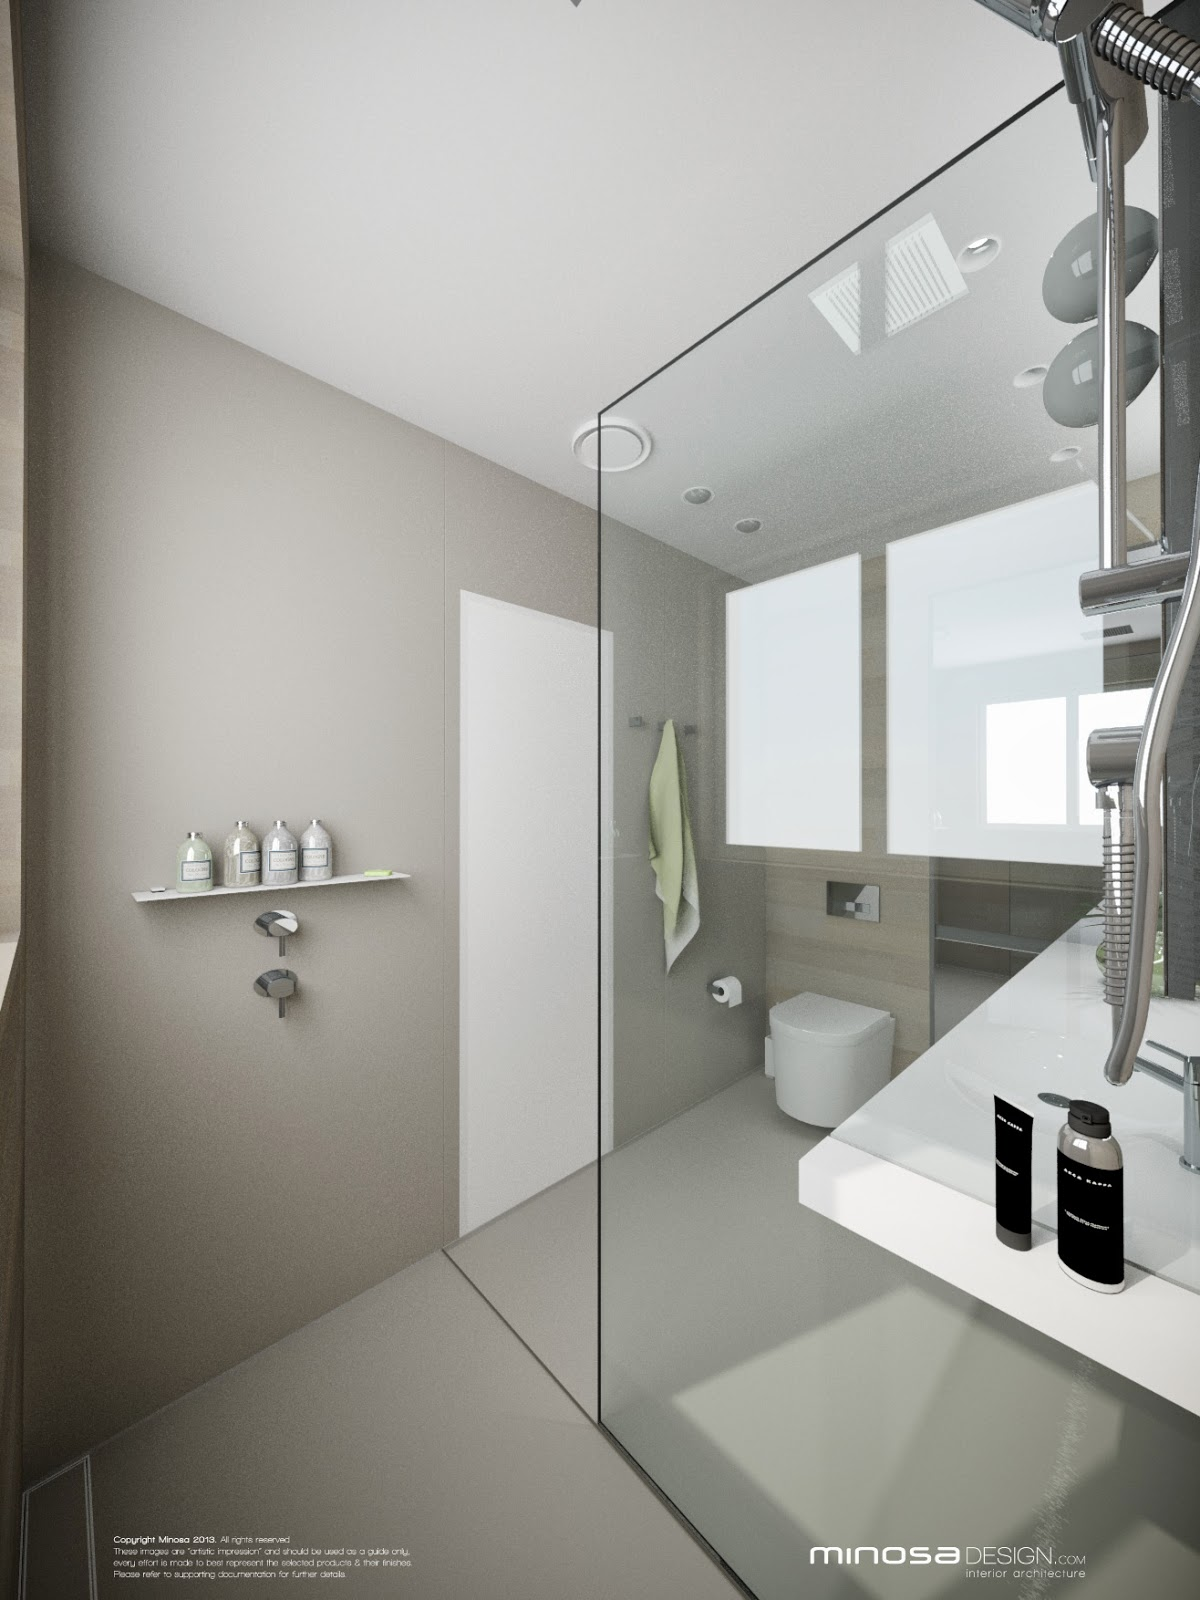 14 Best Photo Of Ensuite Designs For Small Spaces Ideas ...